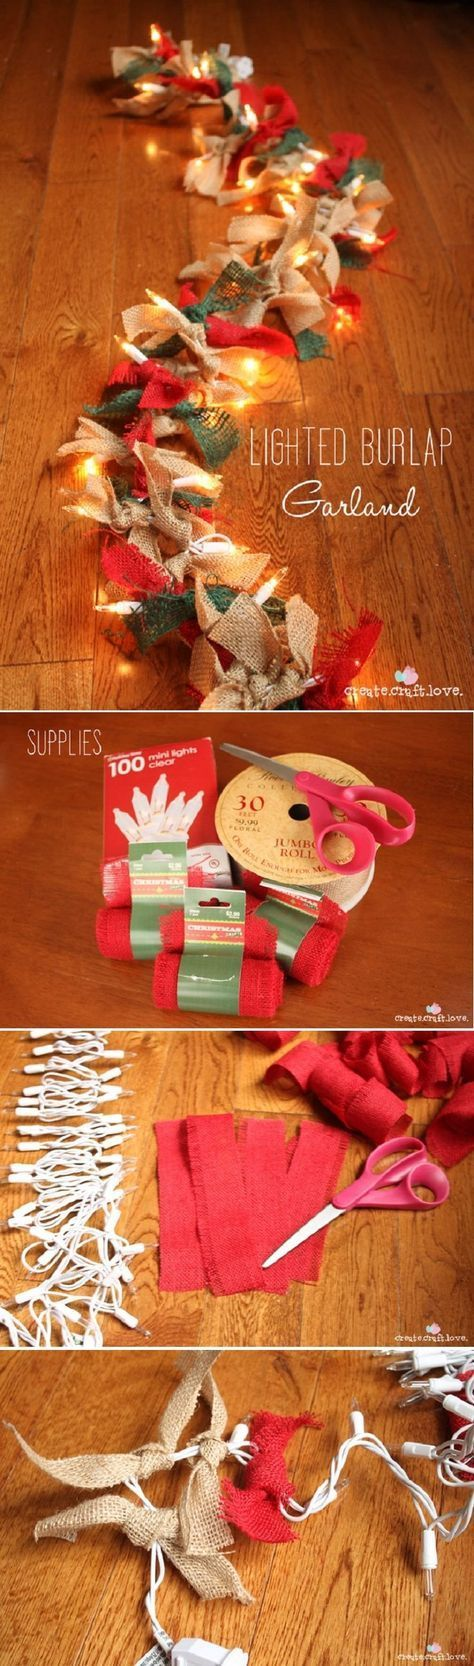 lighted burlap garland 20 jaw dropping diy christmas party